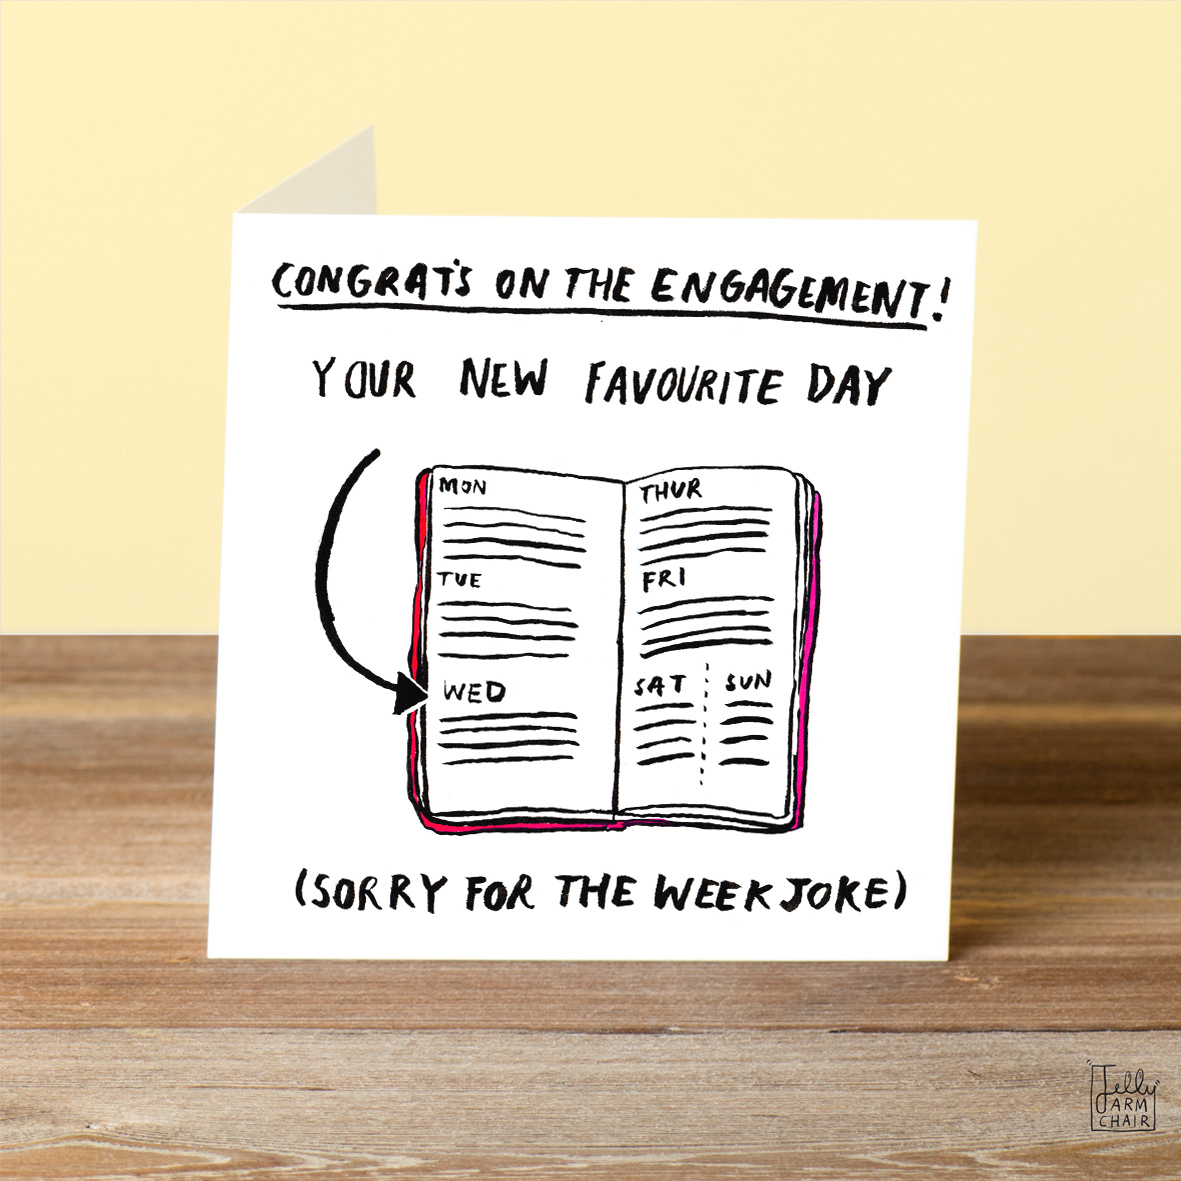 Day-Of-The-Week_-Funny-engagement-card-with-British-humour_WD03_OT